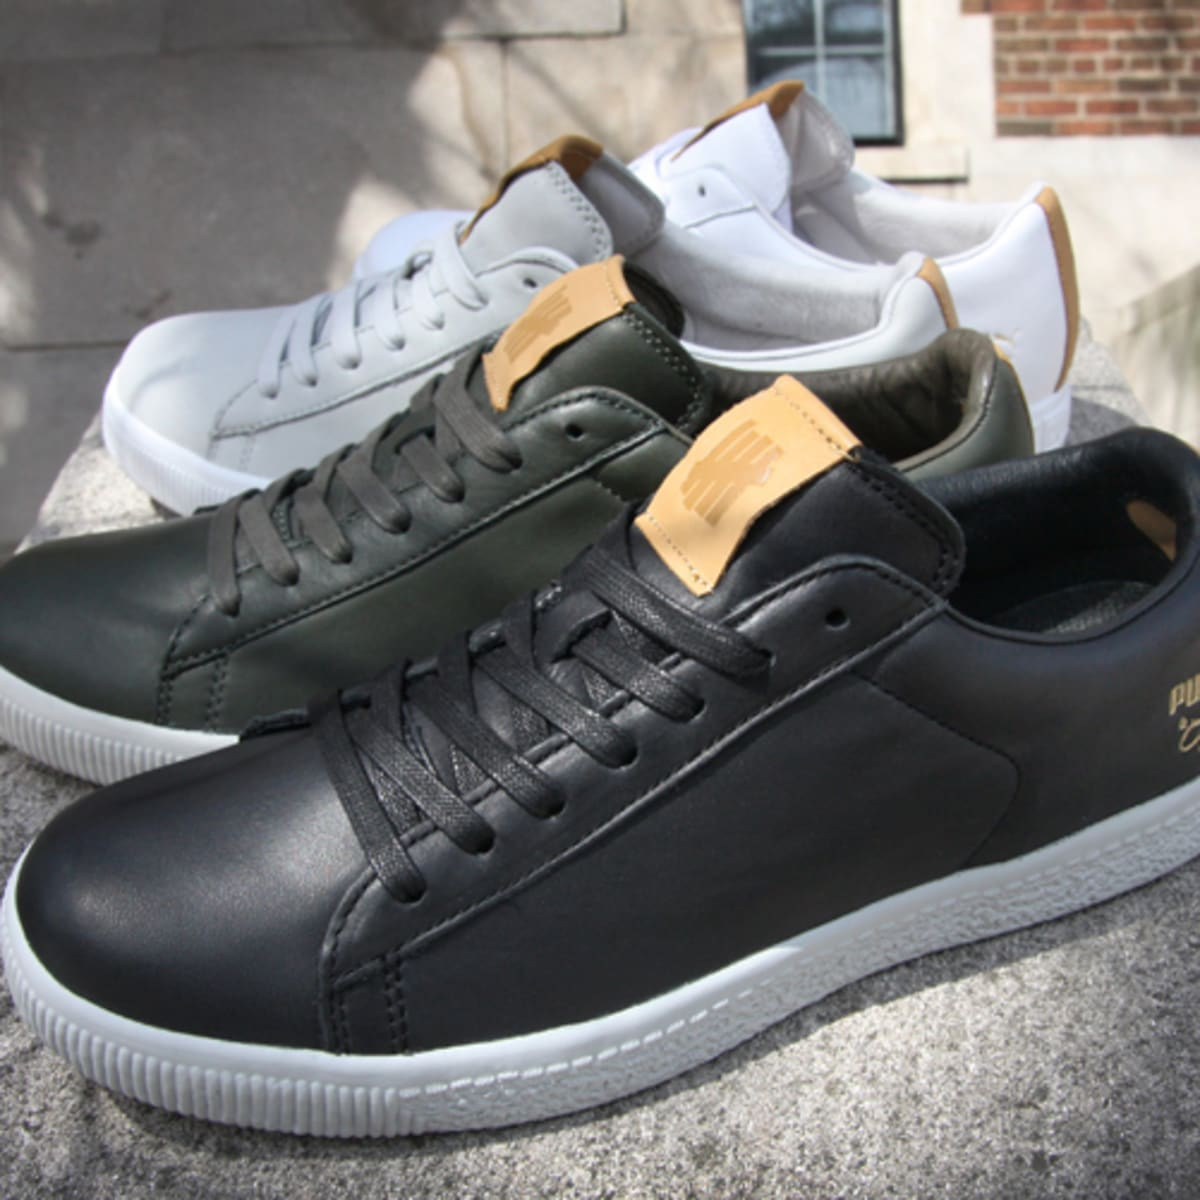 UNDEFEATED x PUMA Clyde - Spring 2011